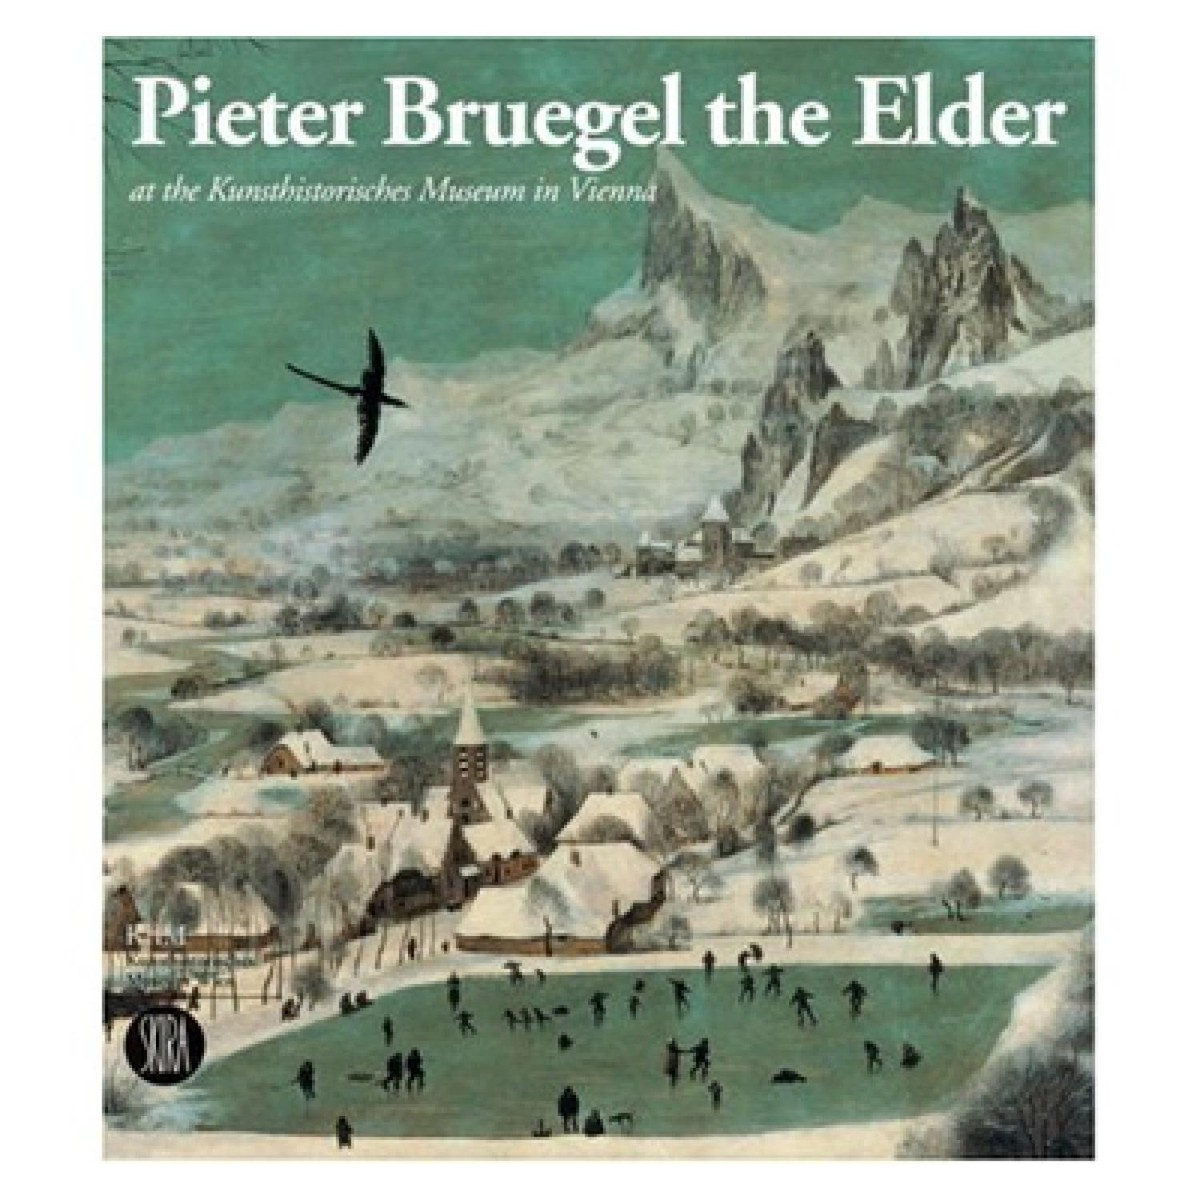 Pieter Bruegel the Elder at the Kunsthistorisches Museum in Vienna по 2 273.00 руб от изд. Skira Editore